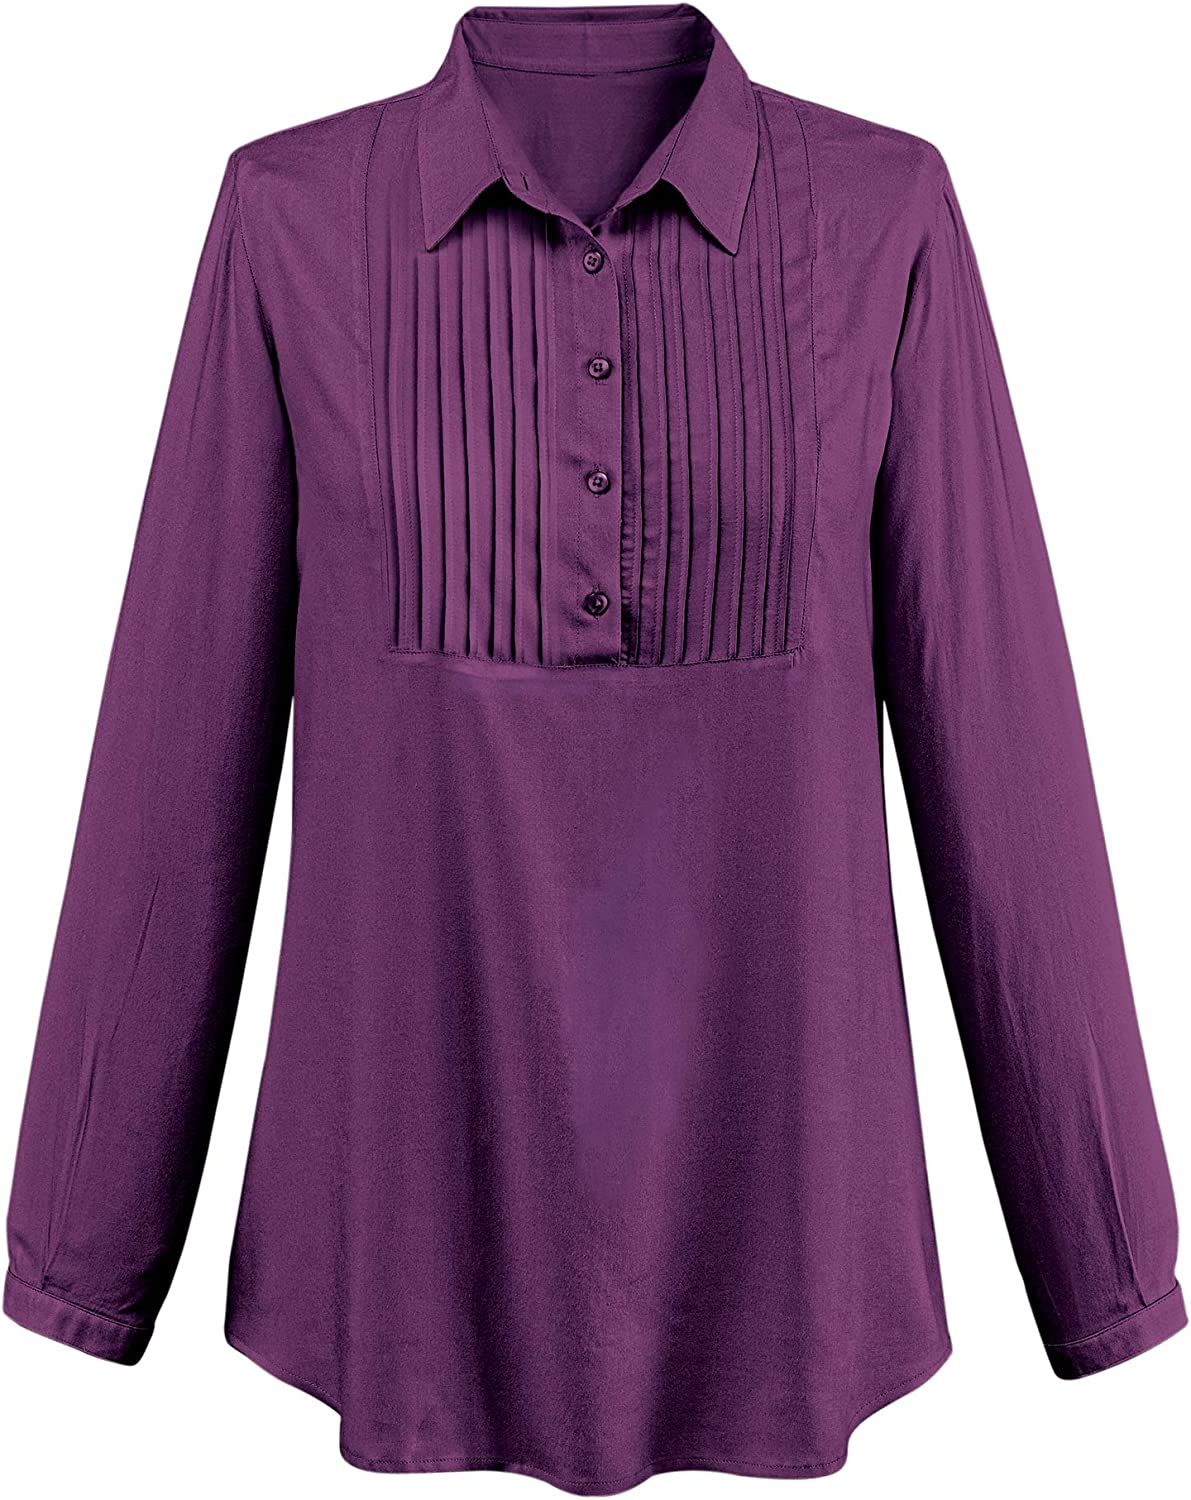 Stylish Lightweight Woven Pintuck Popover Tunic Shirt   Pleated Bust   Button Placket